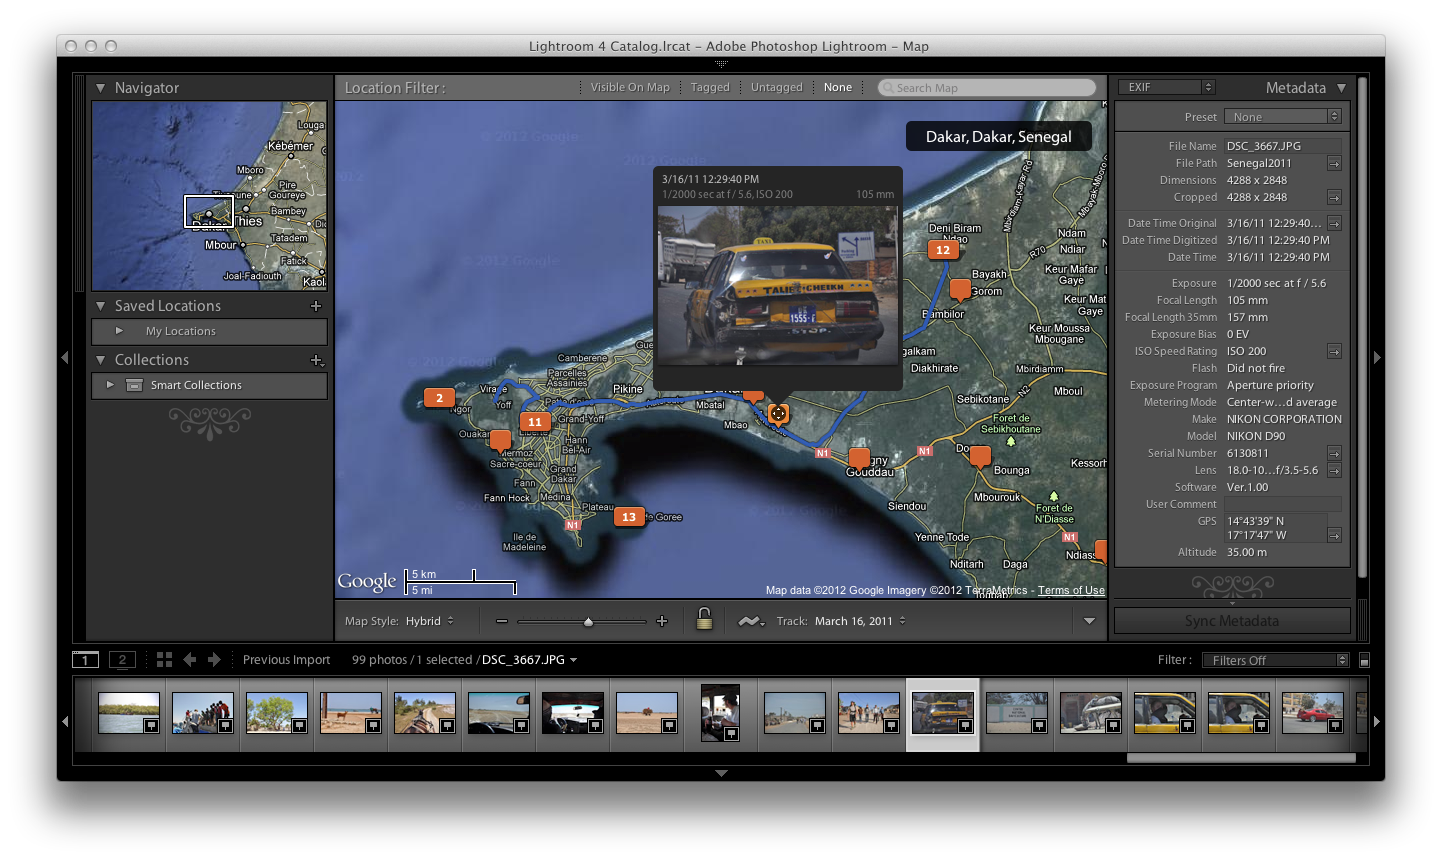 is coming out with support for geotagged photos. Finally Adobe has